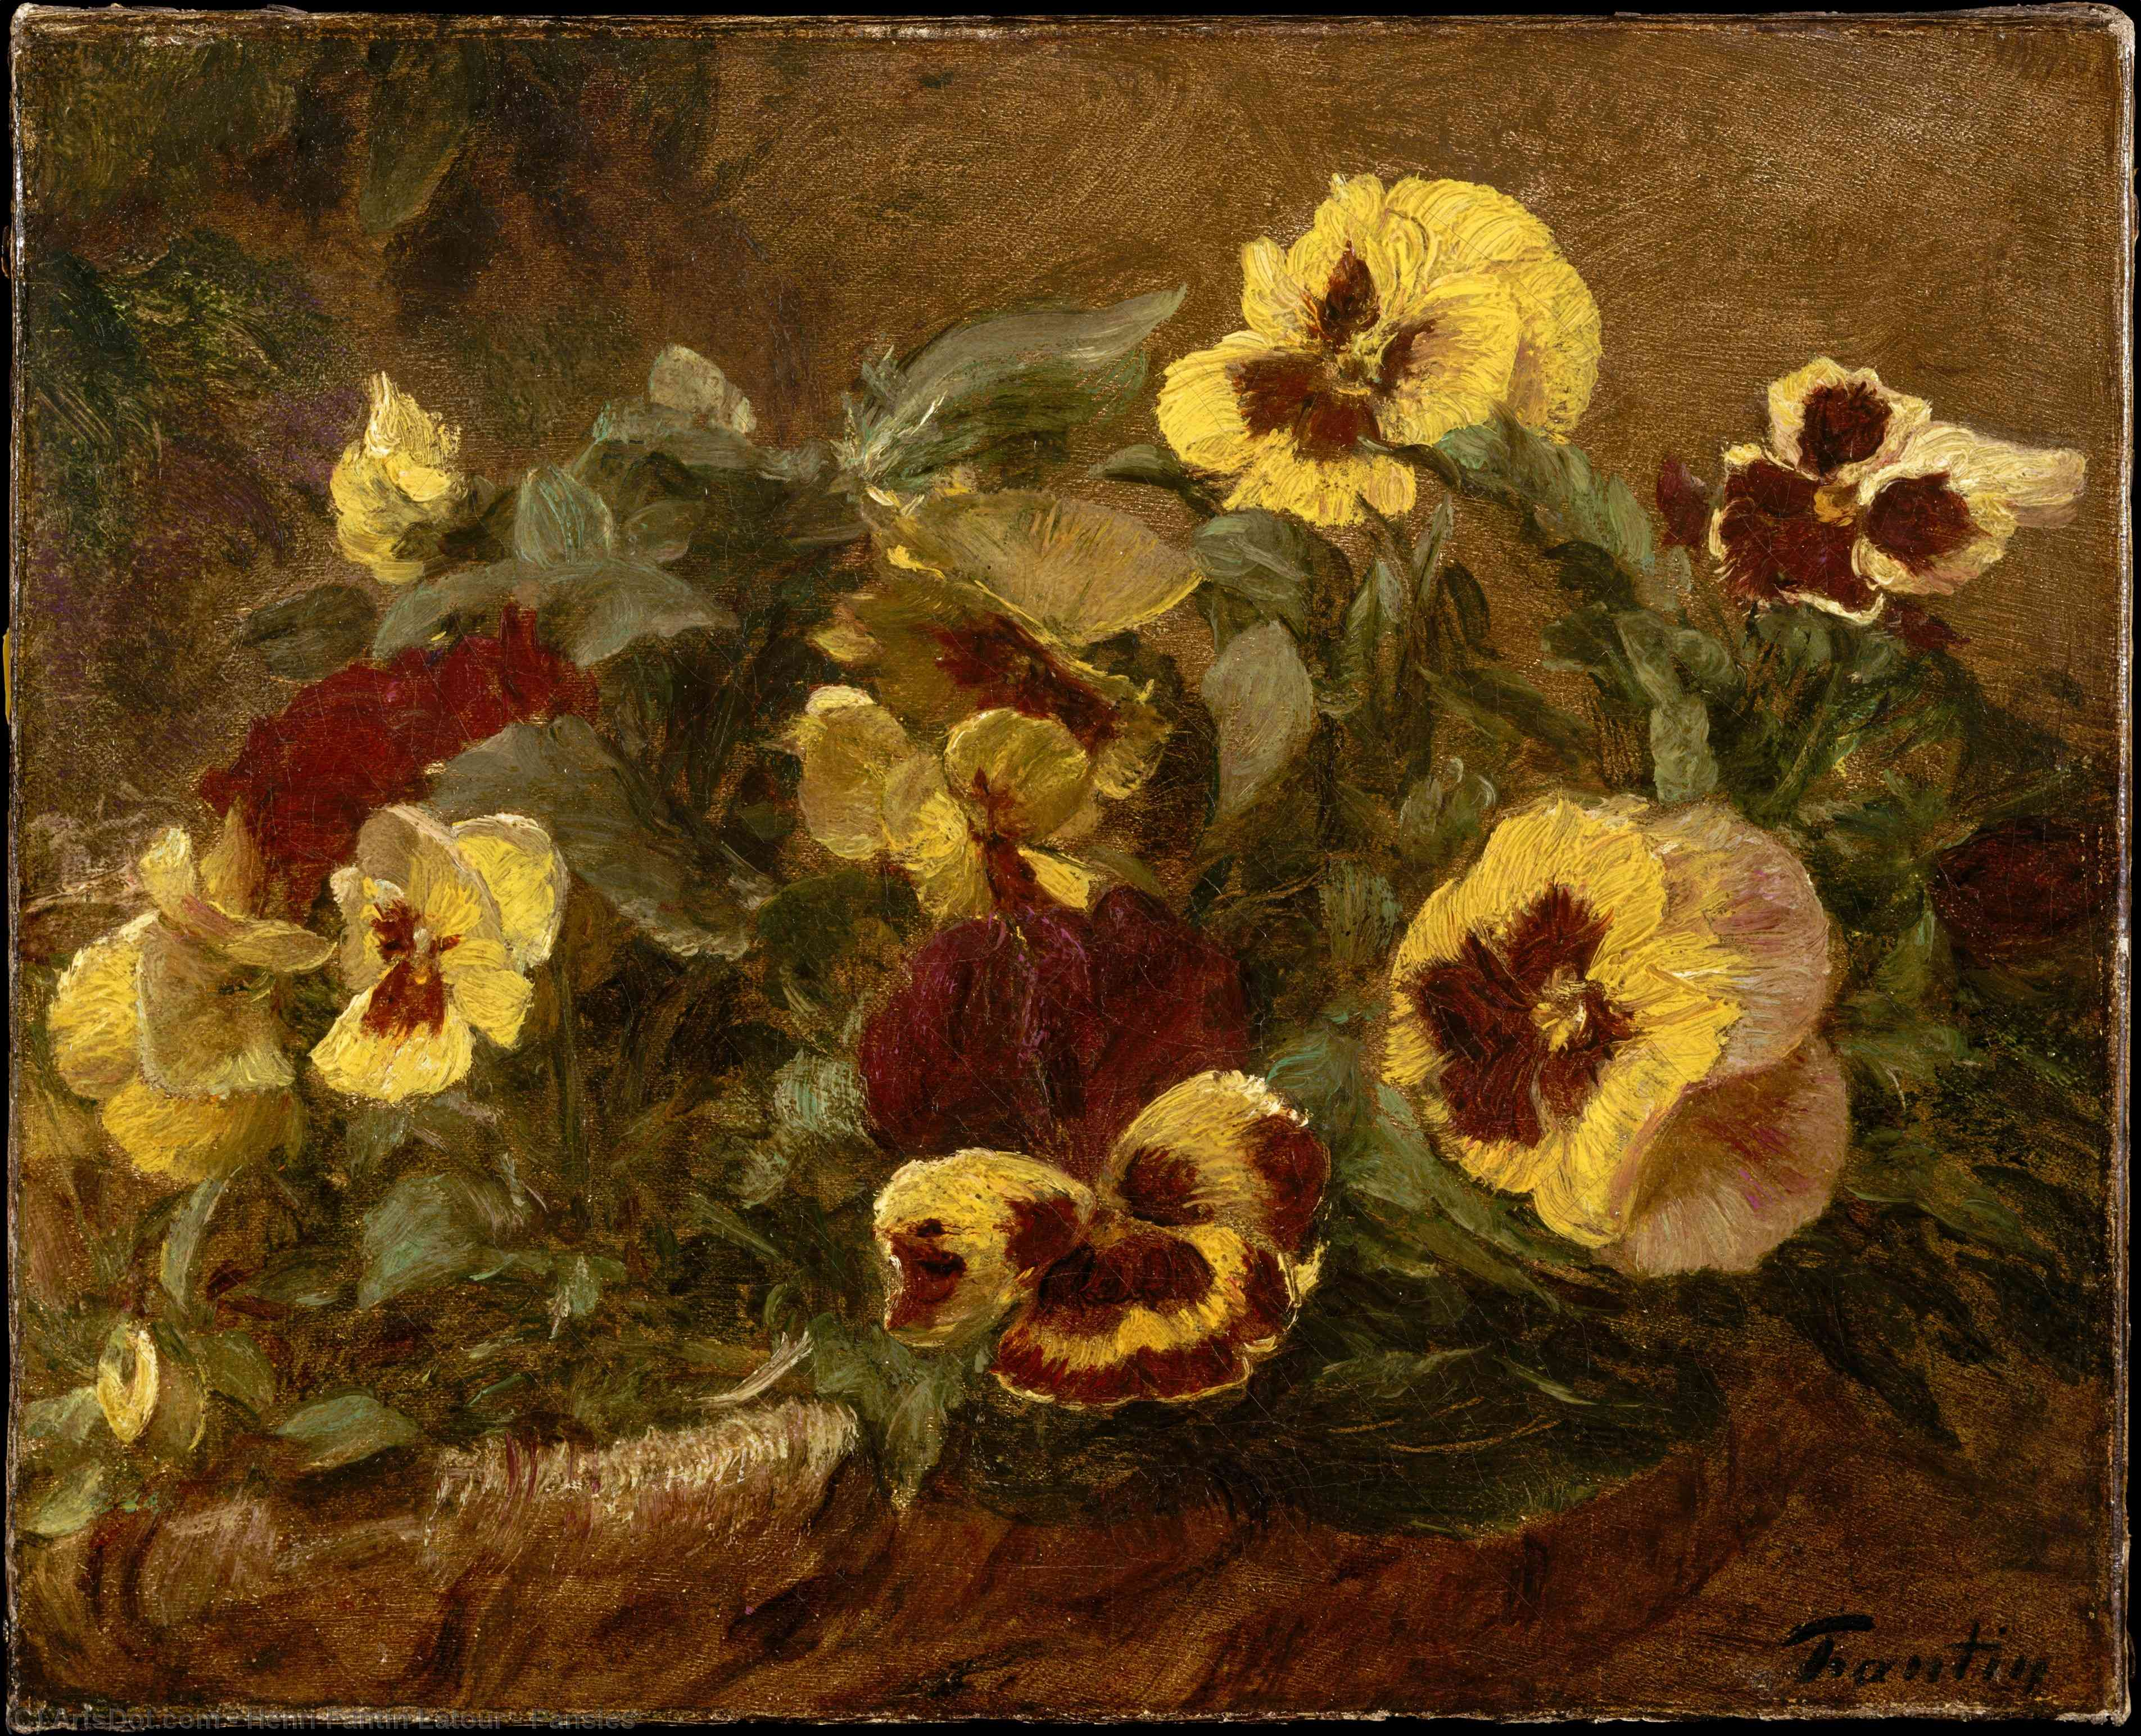 Wikioo.org - The Encyclopedia of Fine Arts - Painting, Artwork by Henri Fantin Latour - Pansies